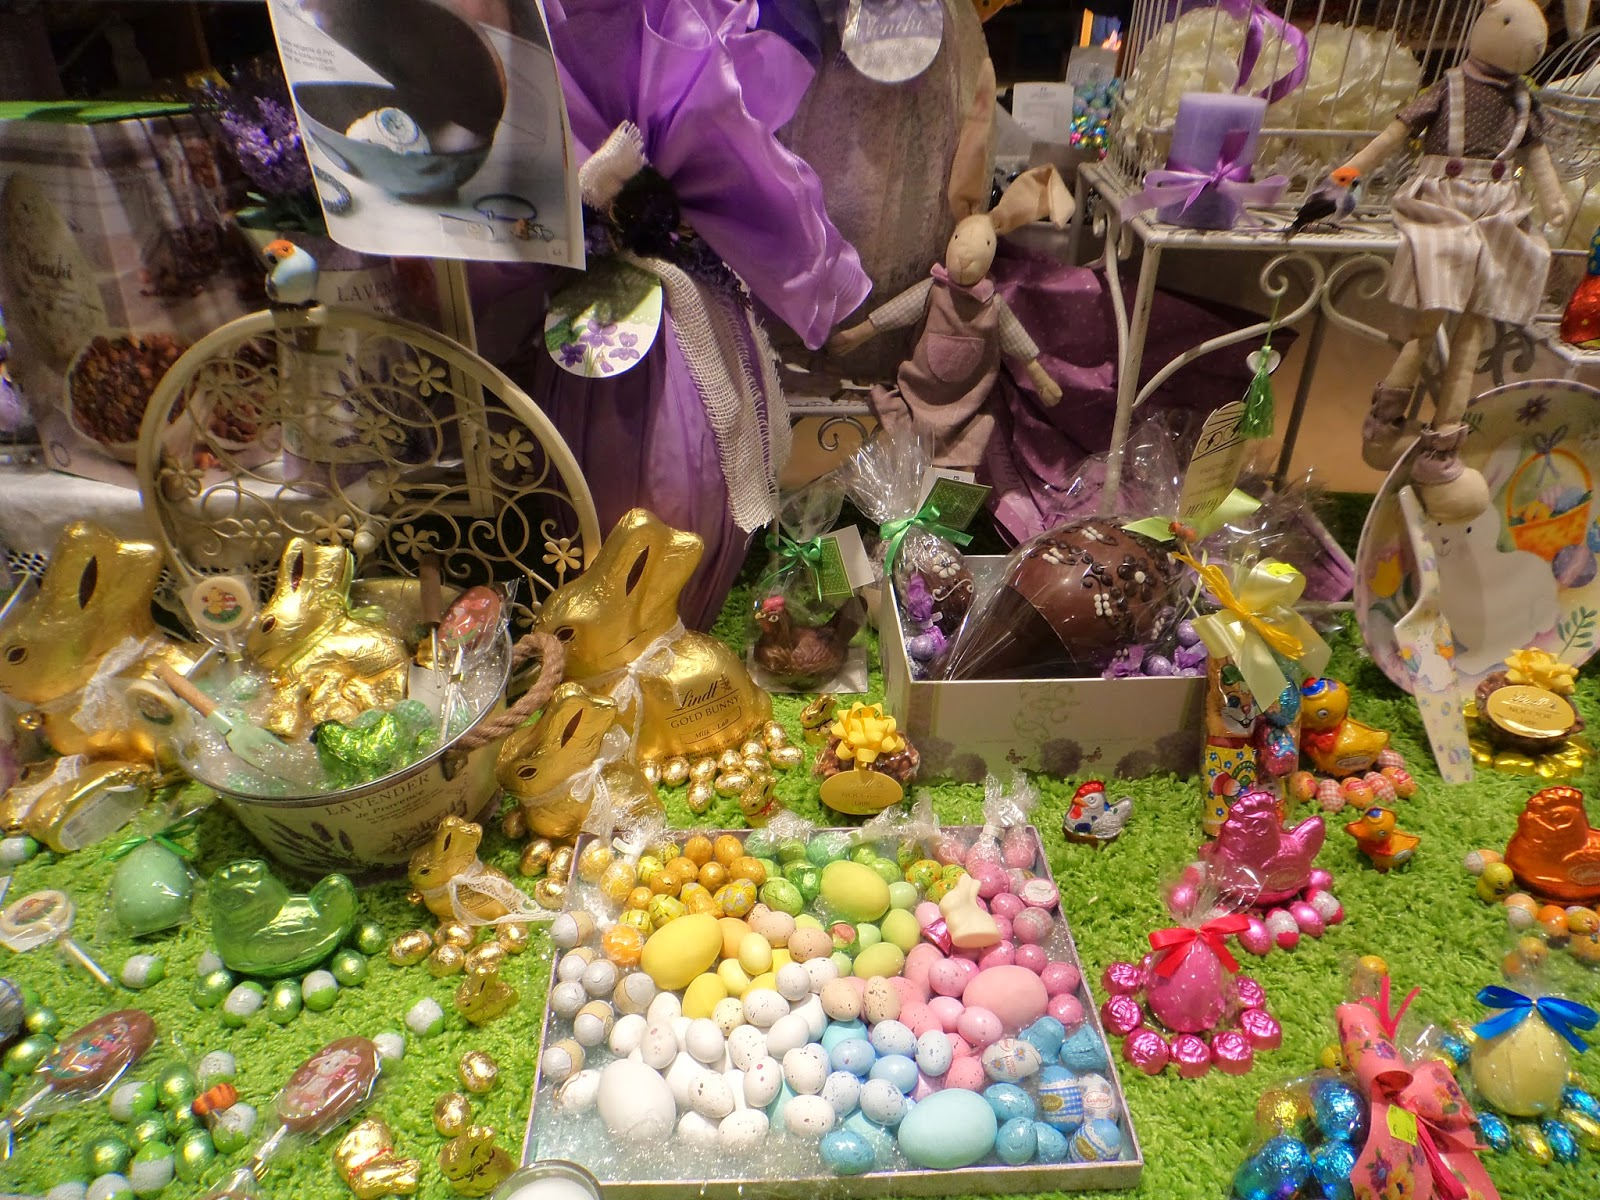 Italians also have an emphasis on chocolate eggs as we can see. In this window display are also colored eggs in pink, green and other colors for Easter.